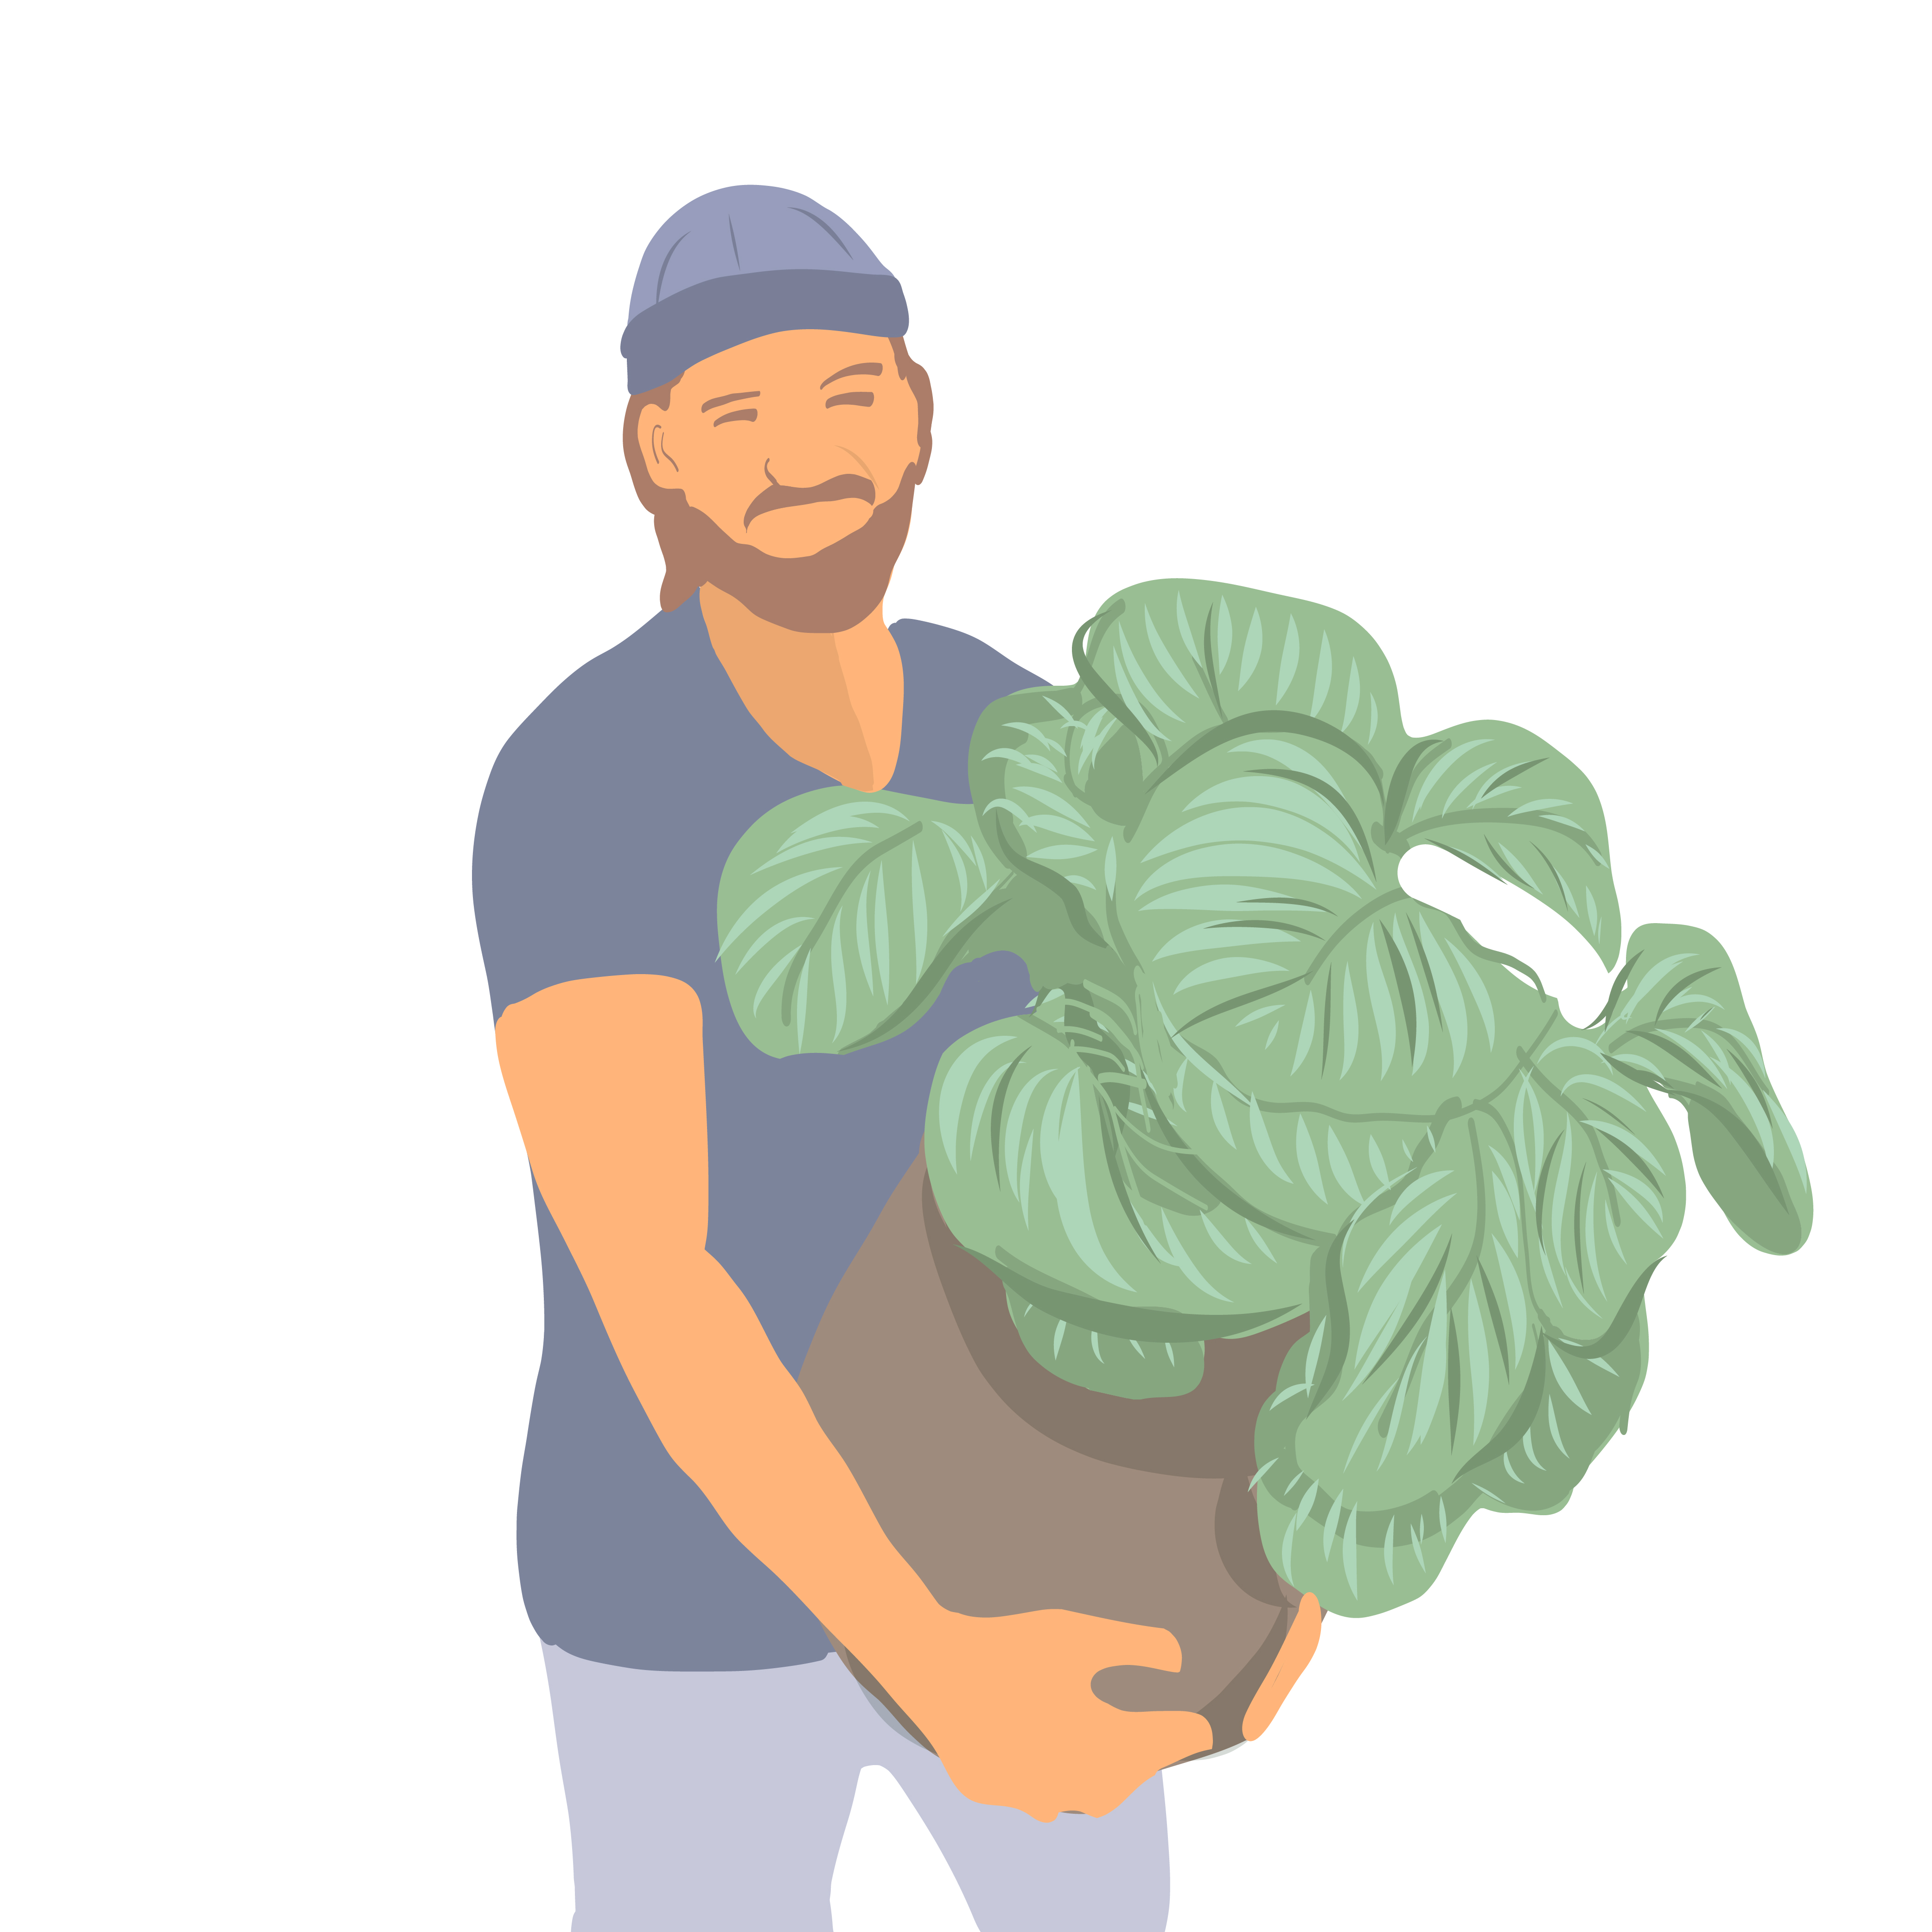 Young clipart boy portrait. Style with plants vector